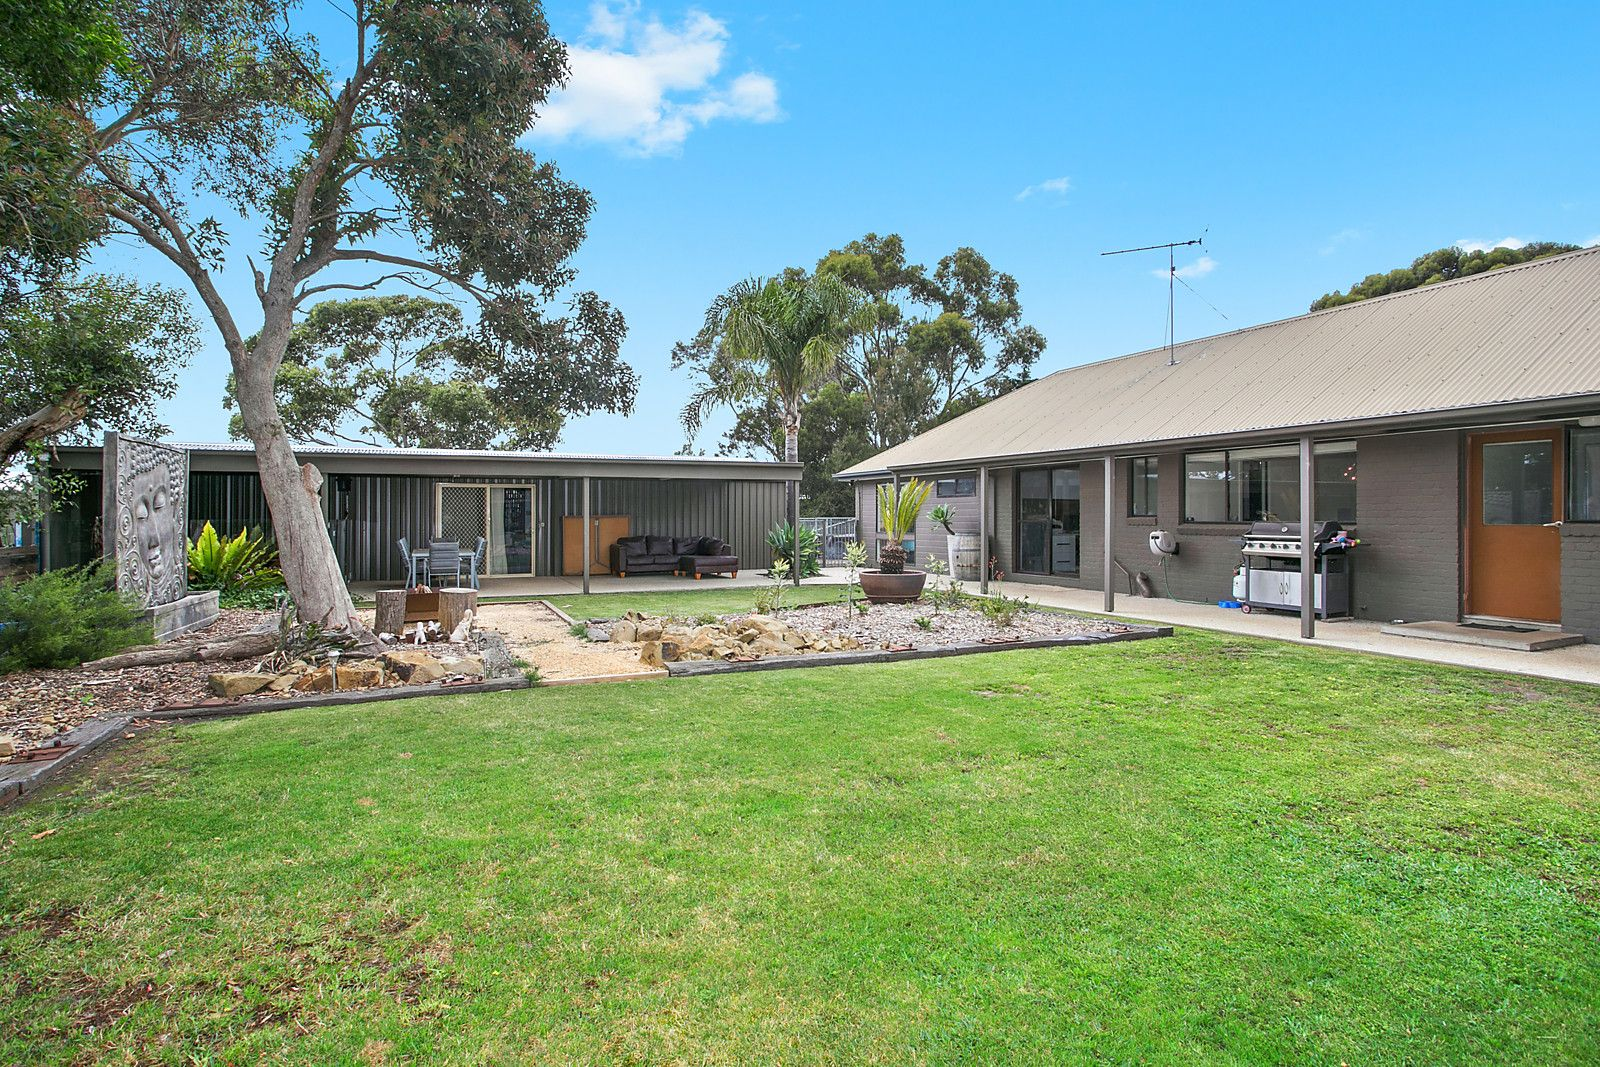 21-29 Chipperfield Drive, Moolap VIC 3224, Image 0